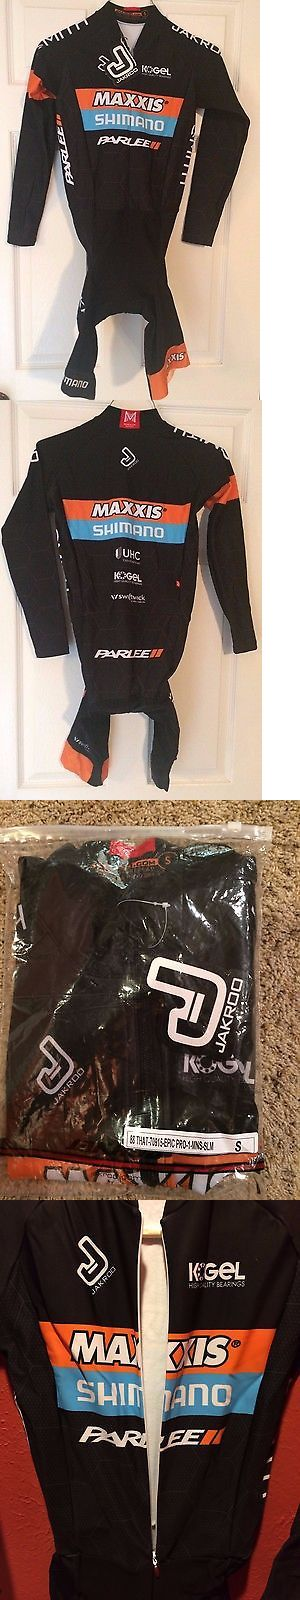 Other Cycling Clothing 177857: Jakroo Maxxis Shimano Parlee Cyclocross Team Long Sleeve Thermal Skinsuit Small -> BUY IT NOW ONLY: $75 on eBay!